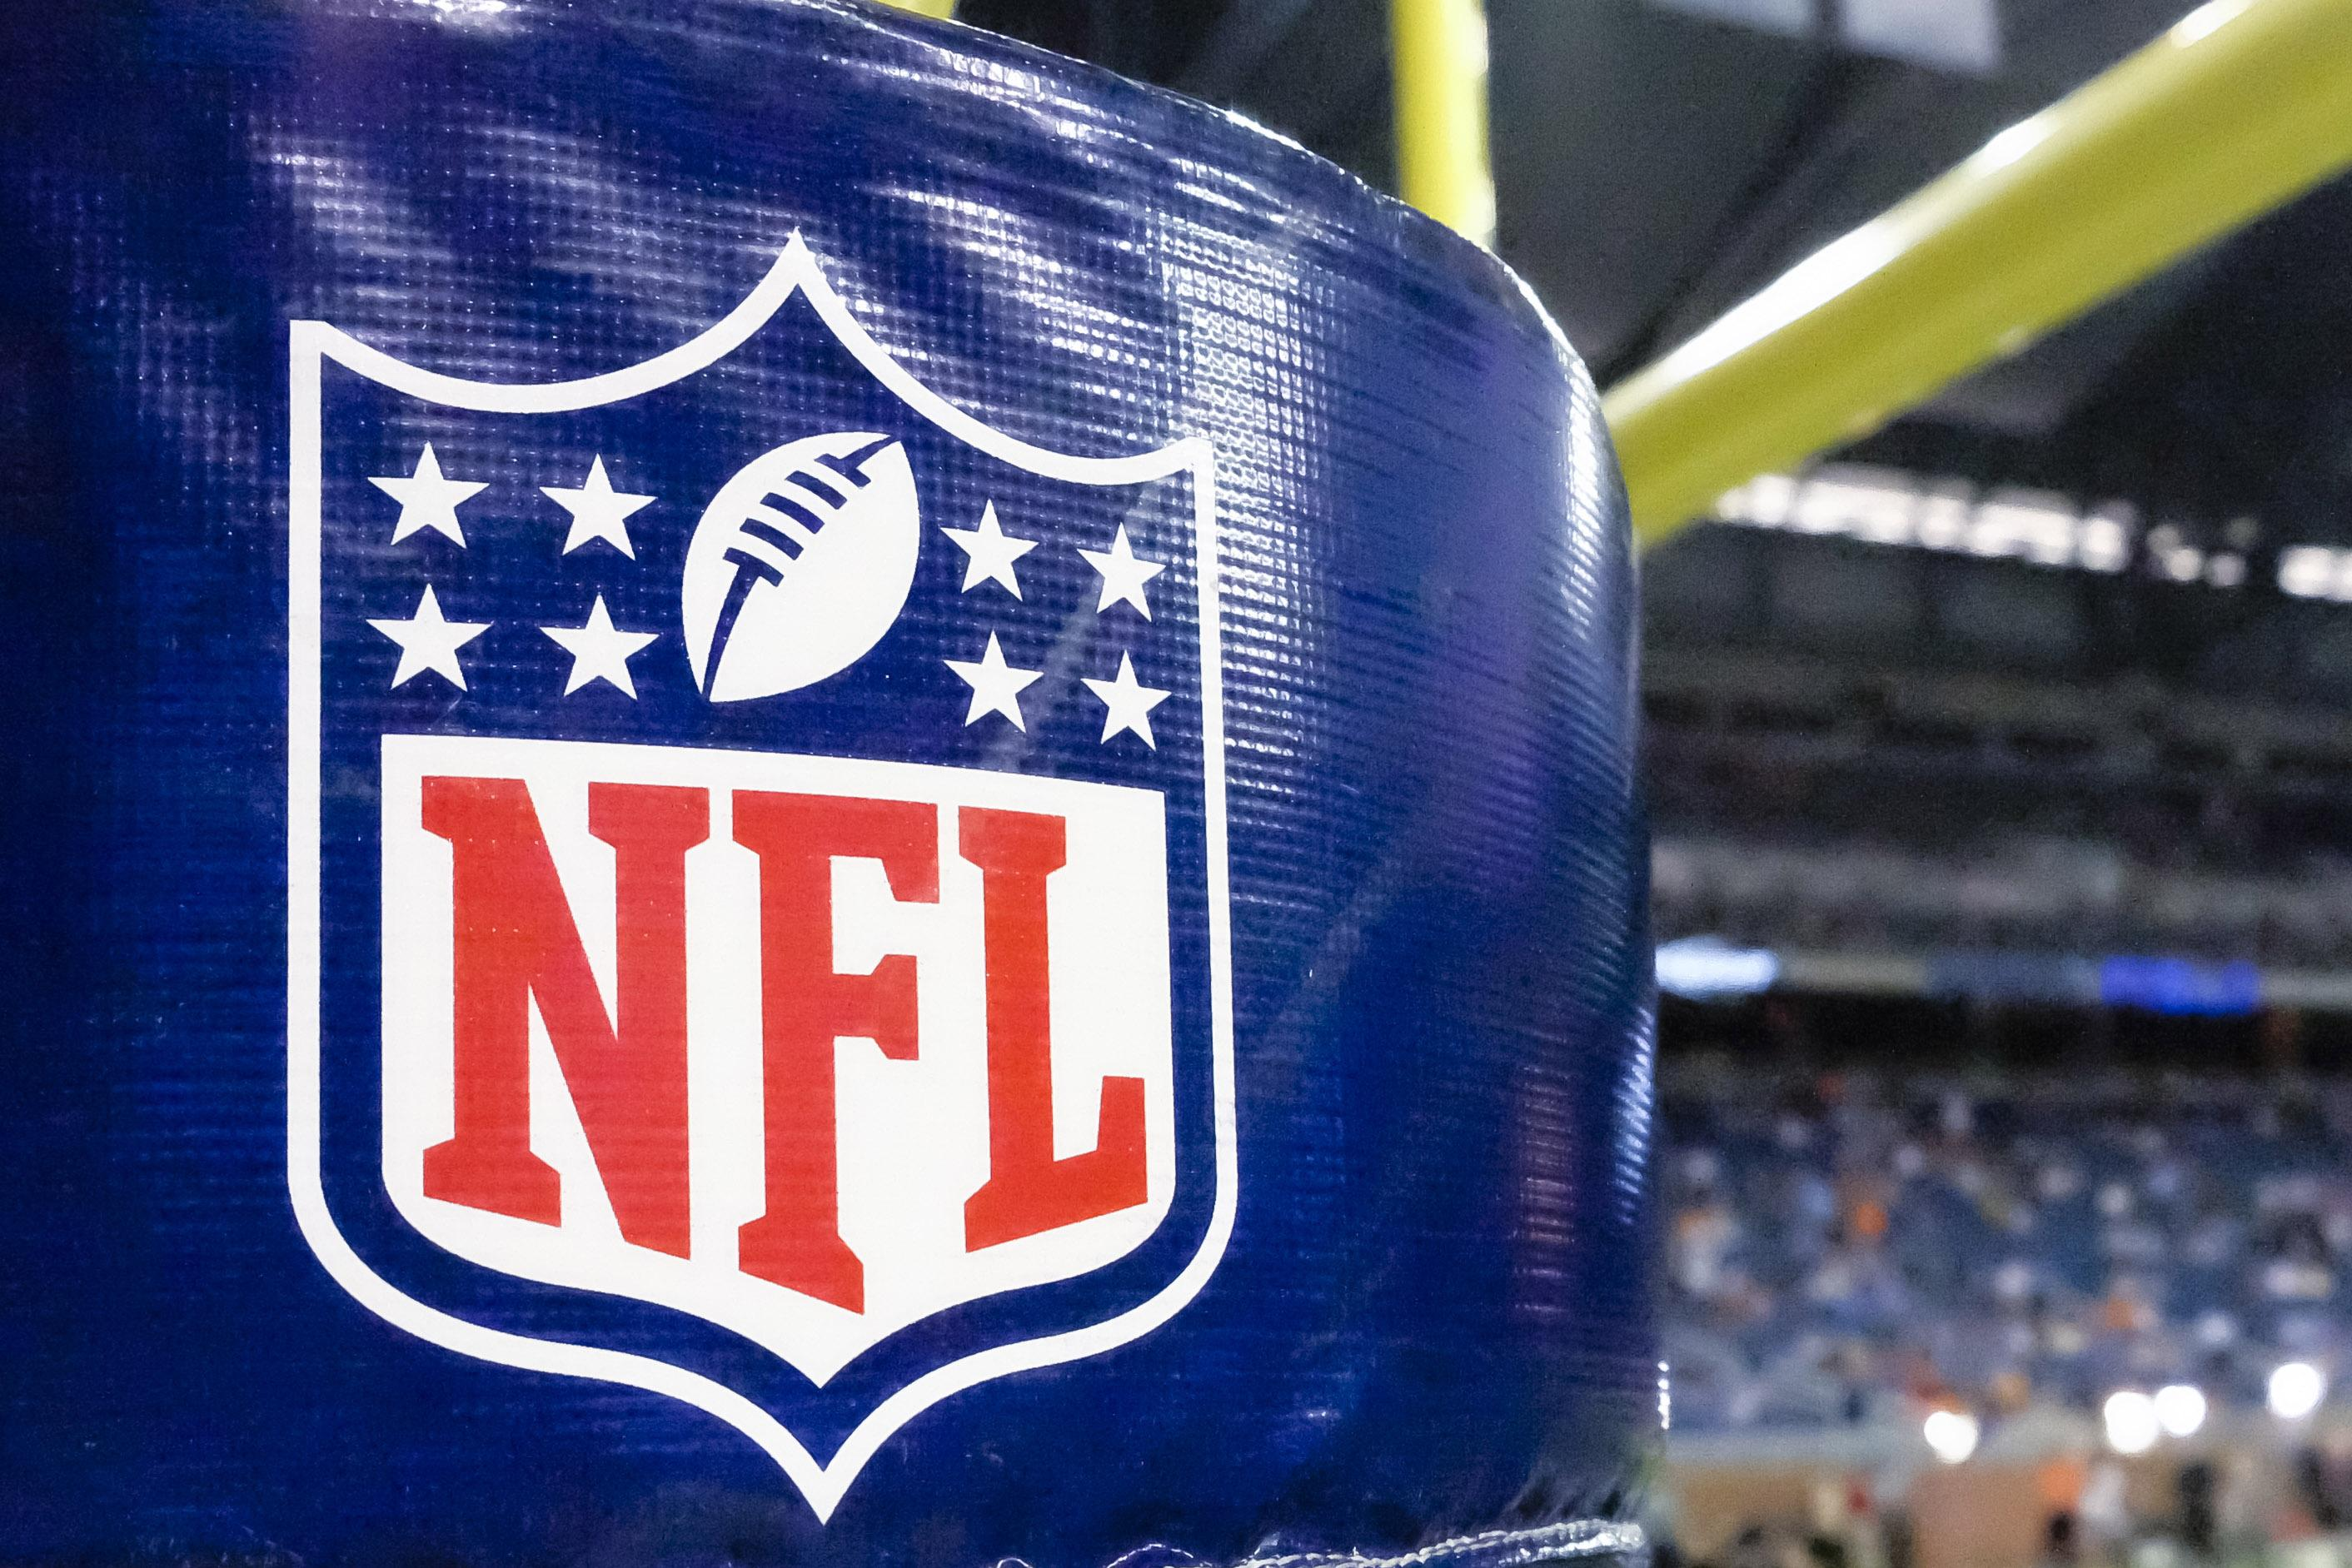 Cowboys Blog - Week 7 NFL Game Picks